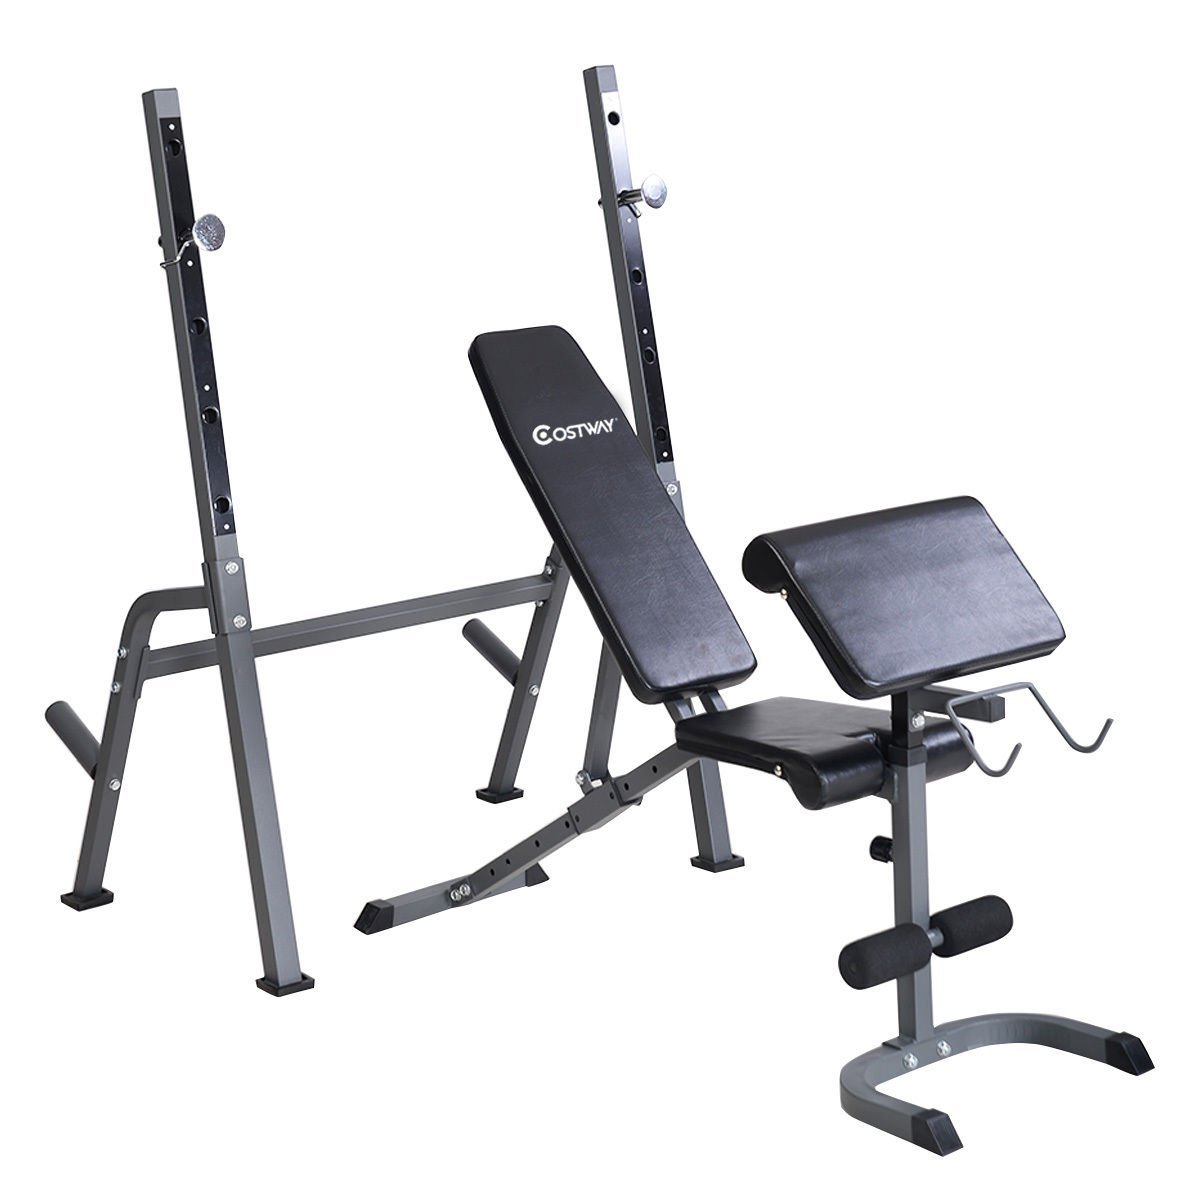 Goplus Adjustable Weight Lifting Bench+Rack Set Fitness Barbell Dumbbell Workout